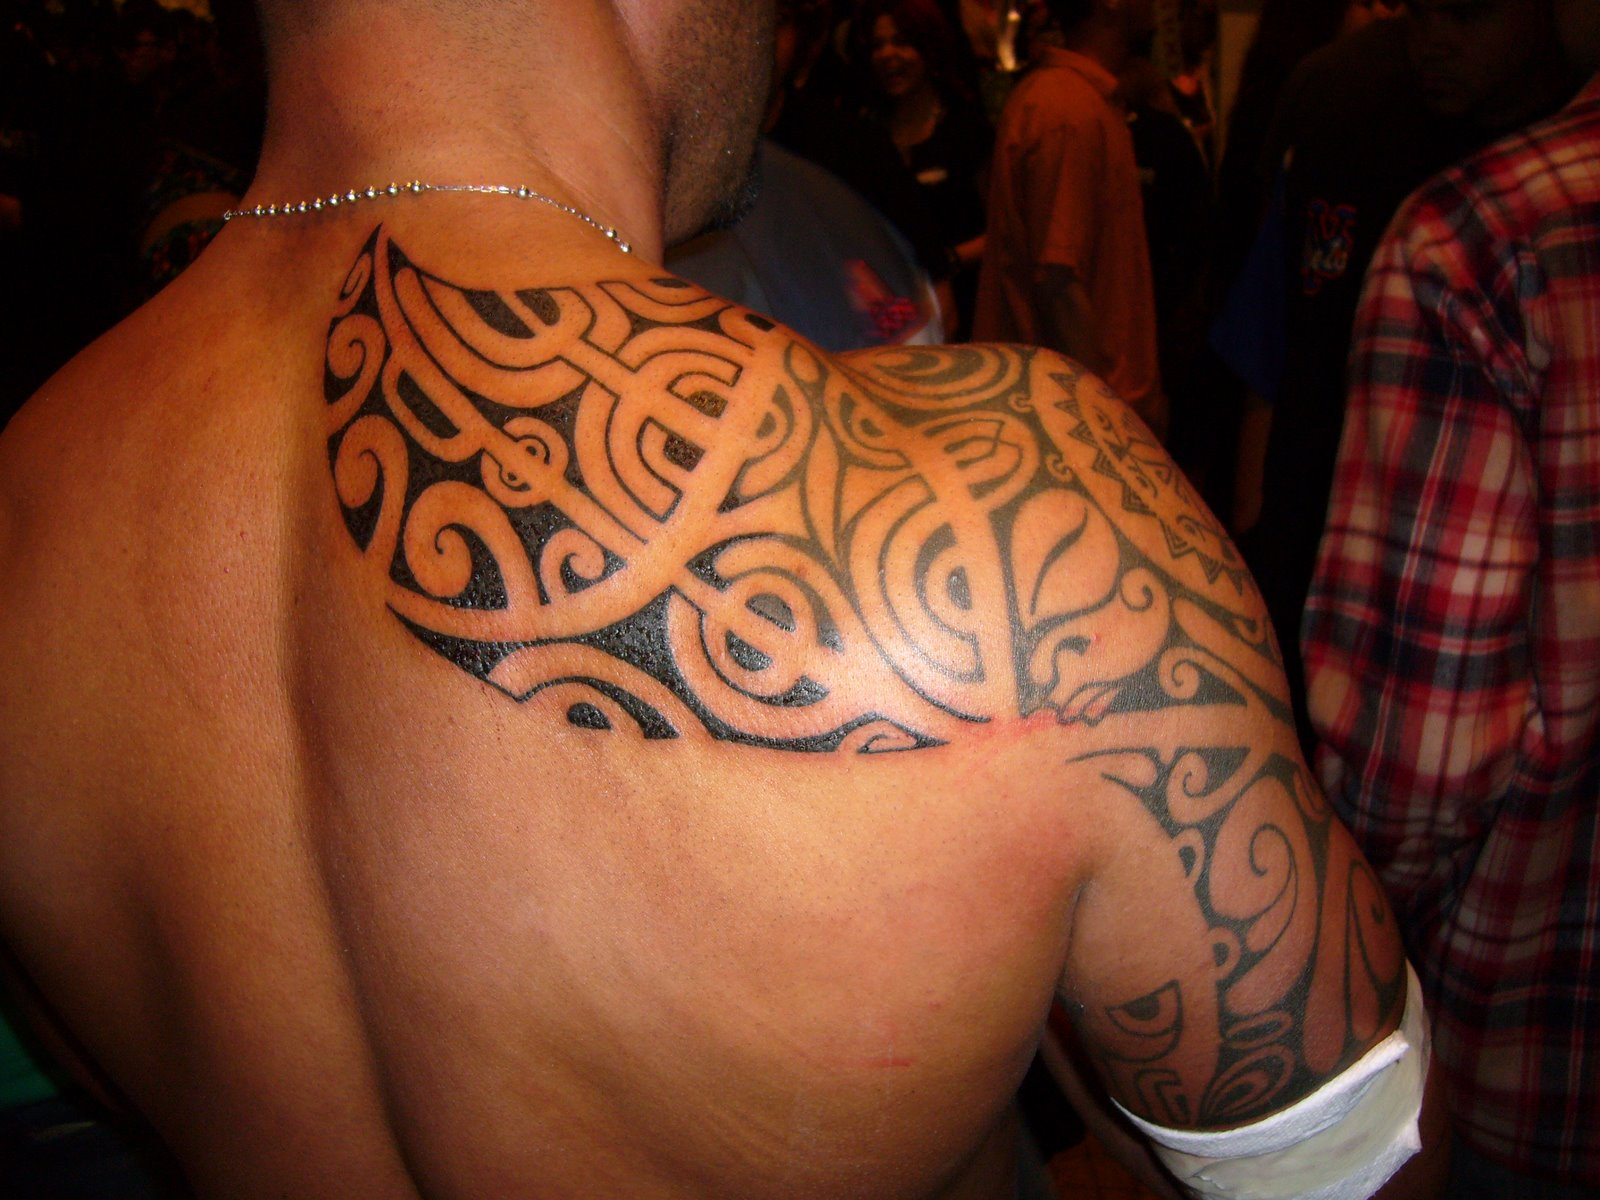 tattoos change tattoos for men on shoulder. Black Bedroom Furniture Sets. Home Design Ideas